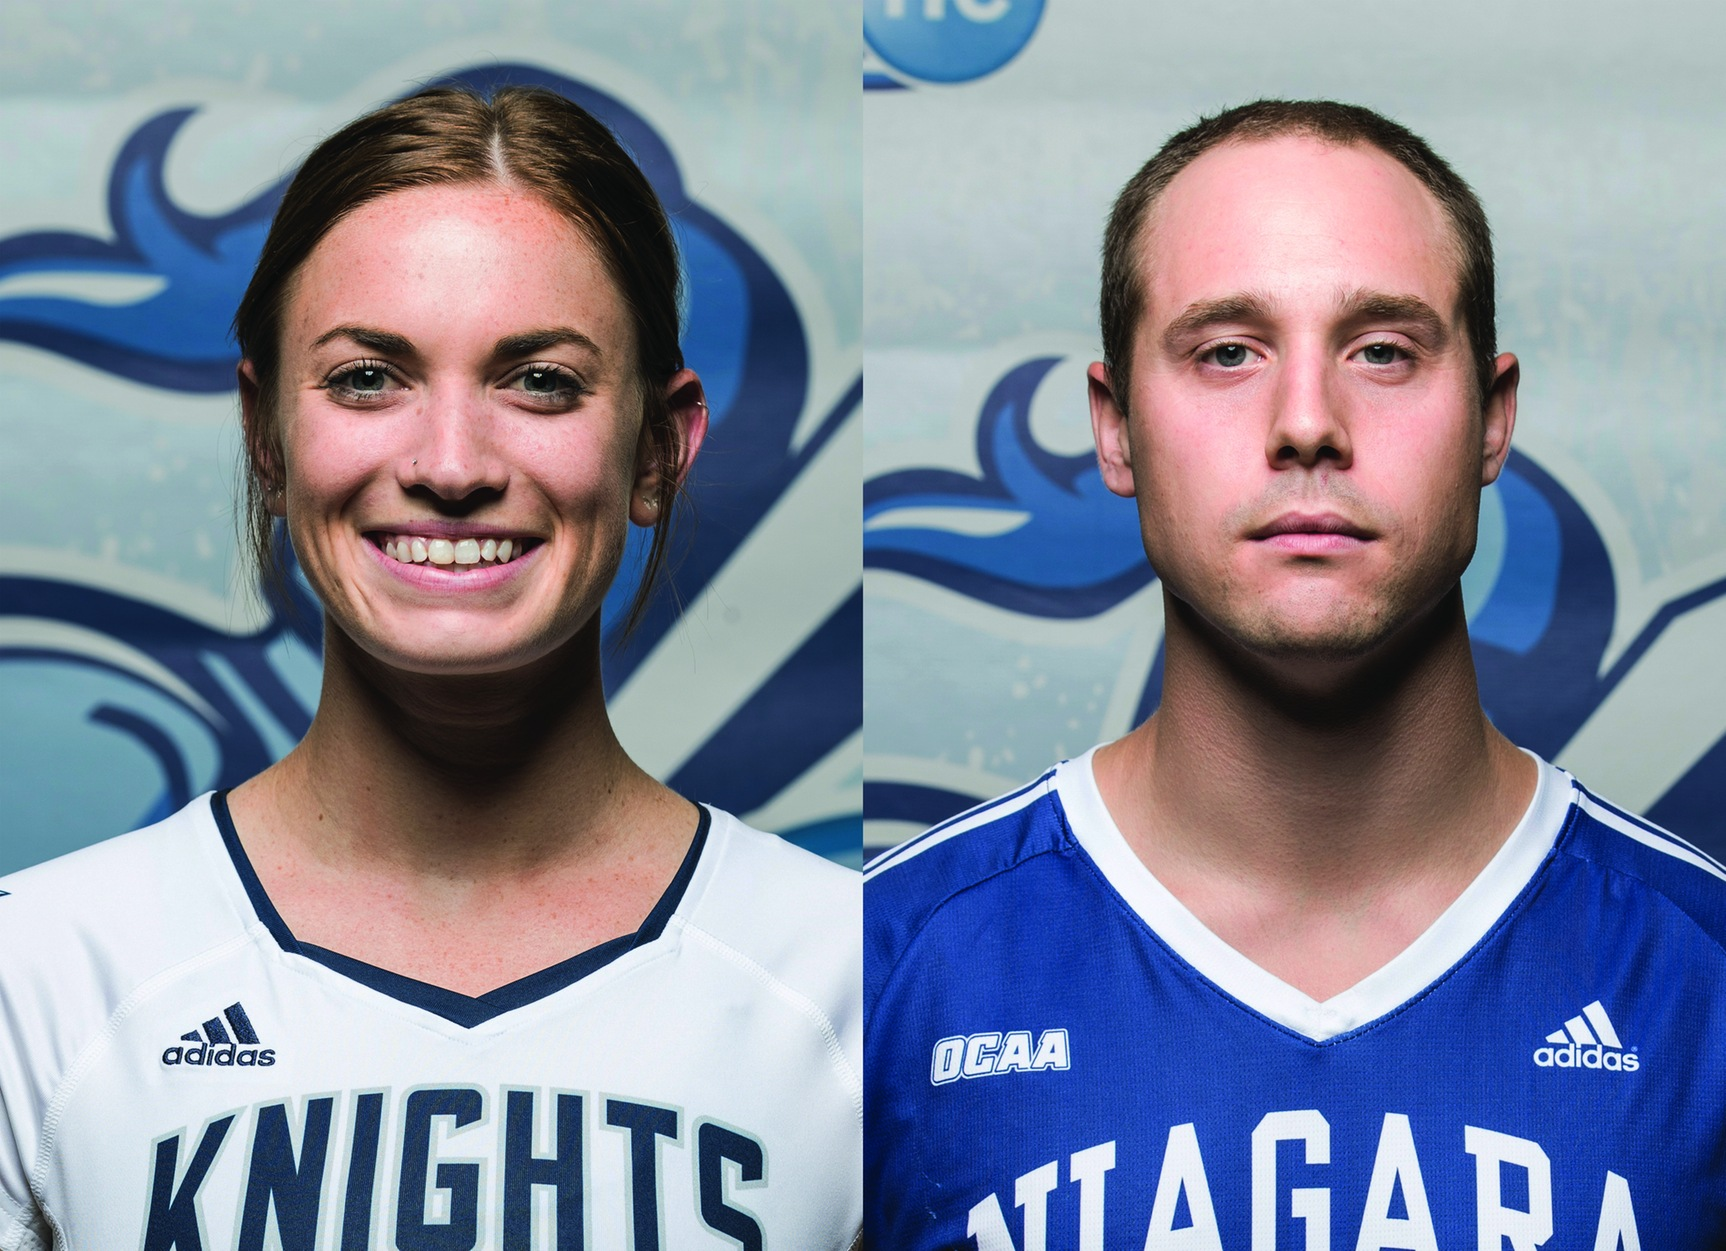 NEWS: Koslowski and Williamson named Athletes of the Week